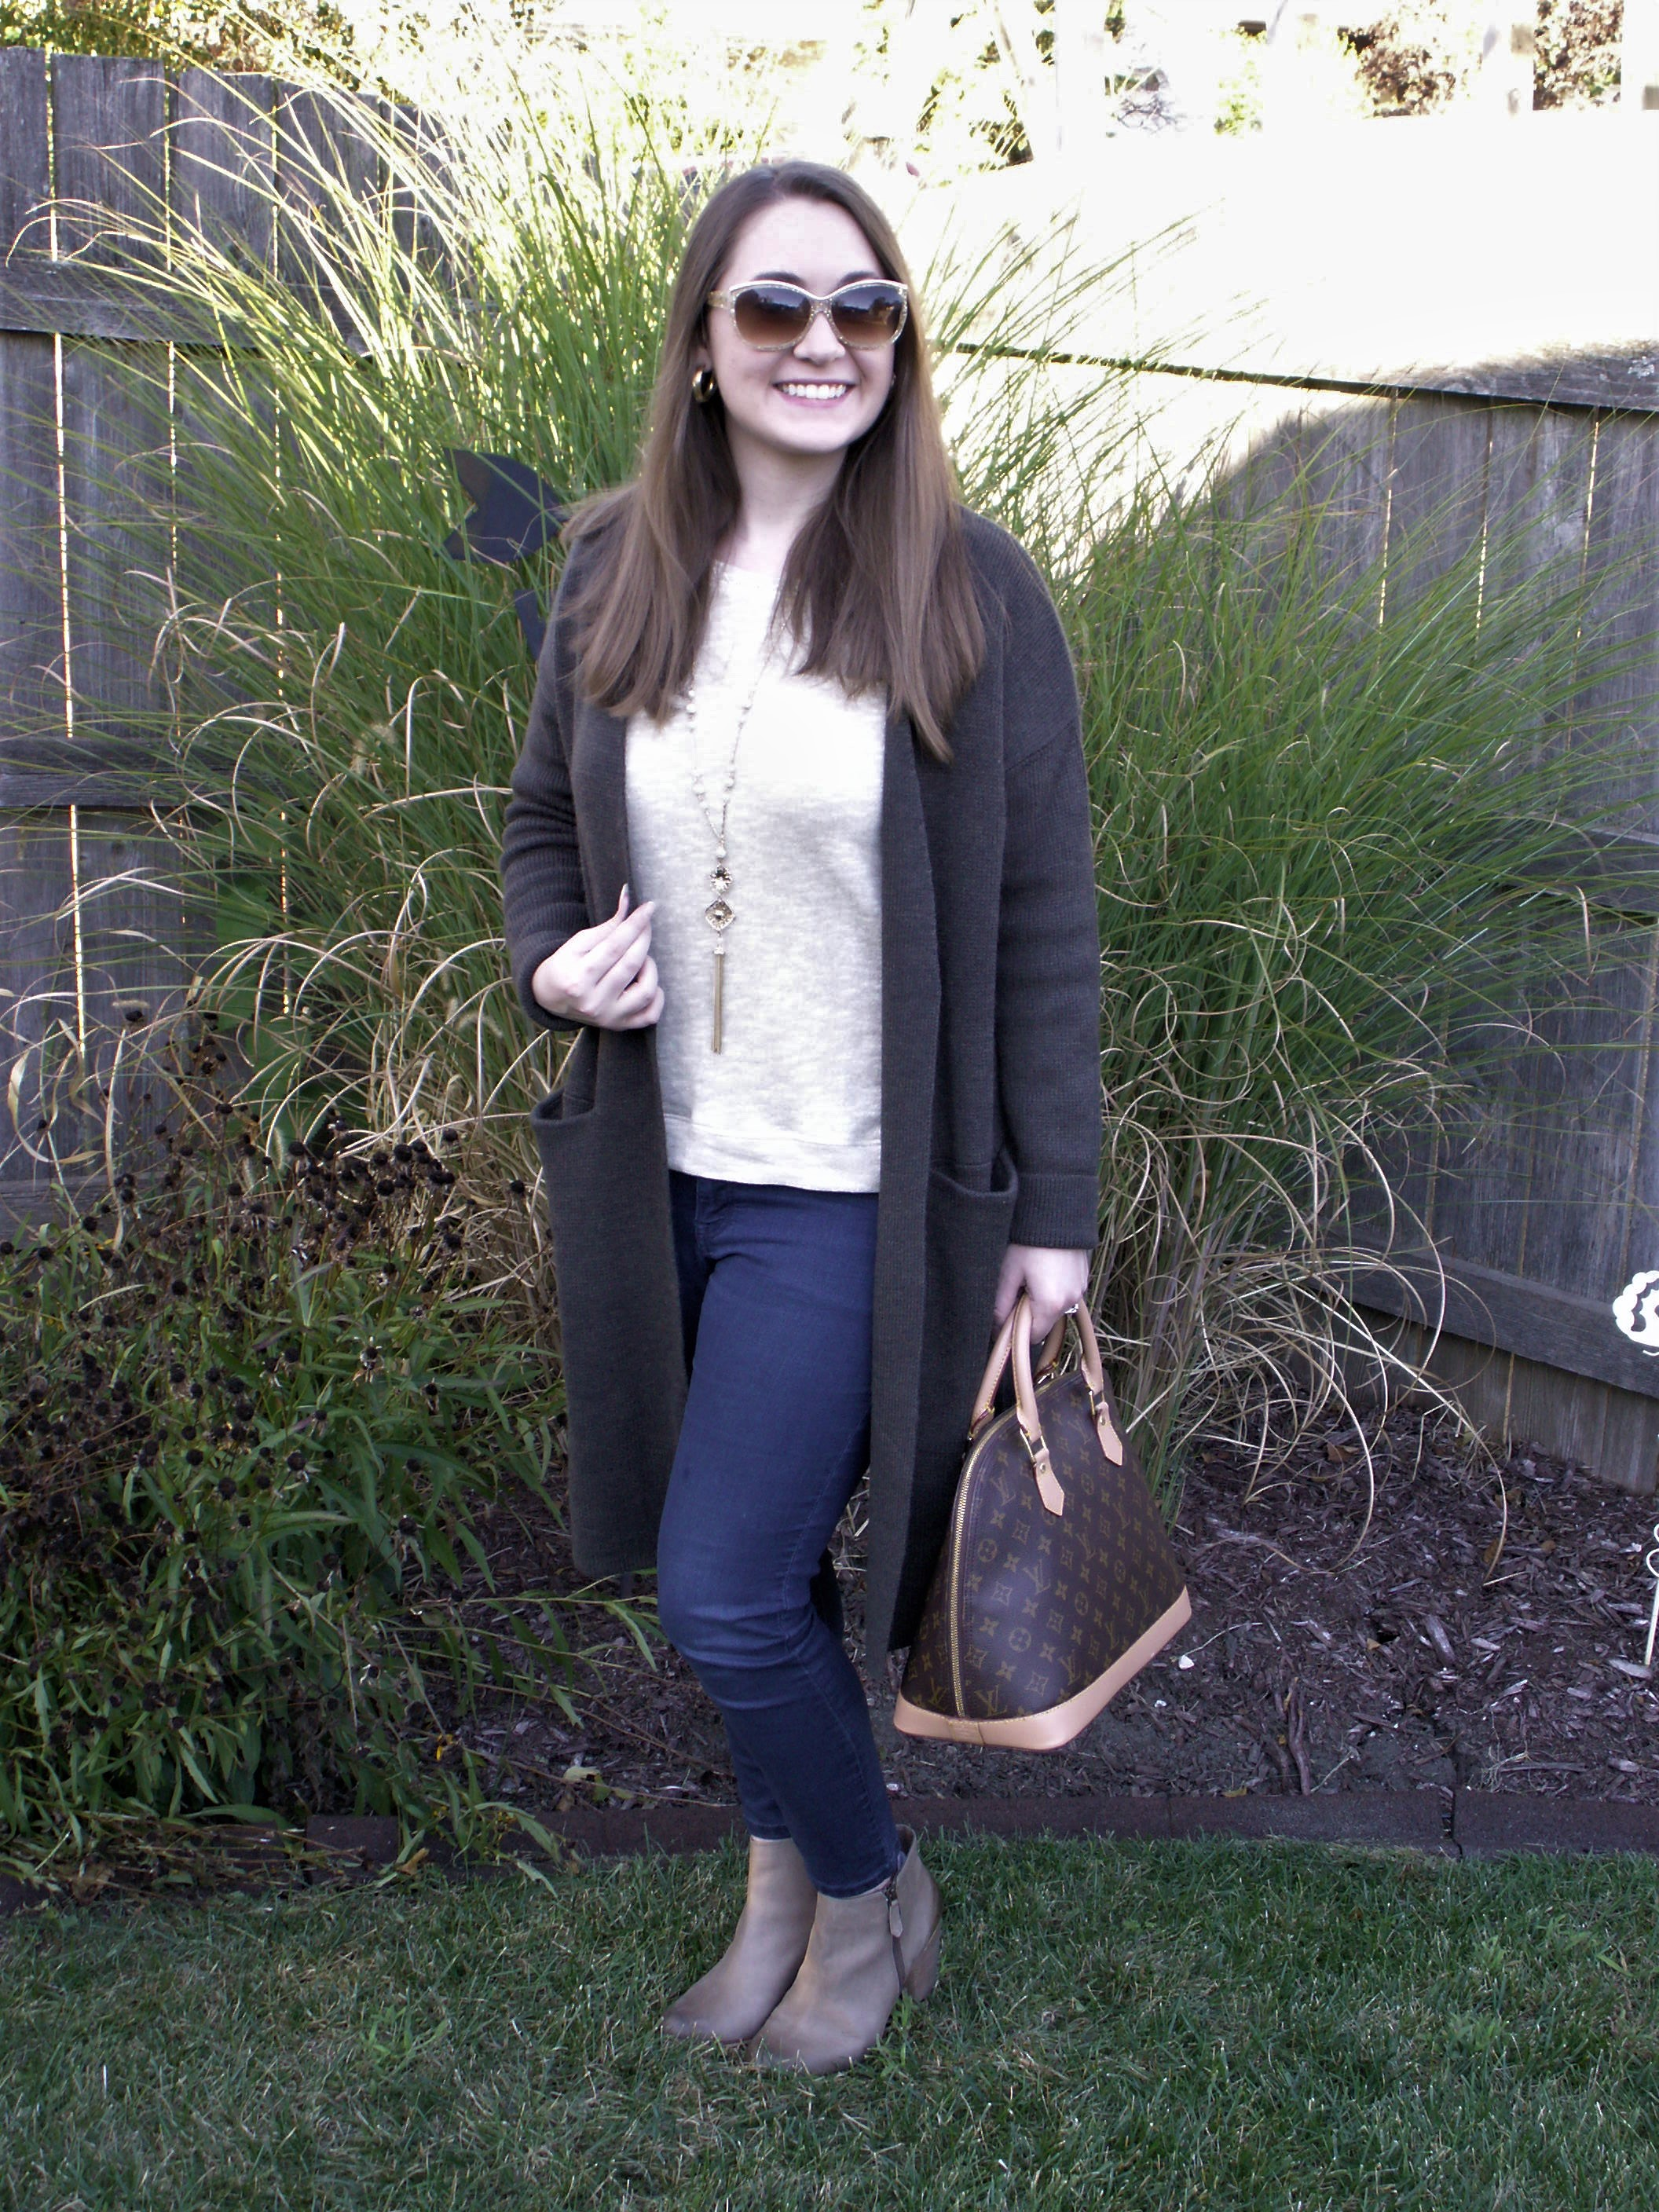 Model is wearing an oversize cardigan over a sweater with a long necklace and ankle boots.